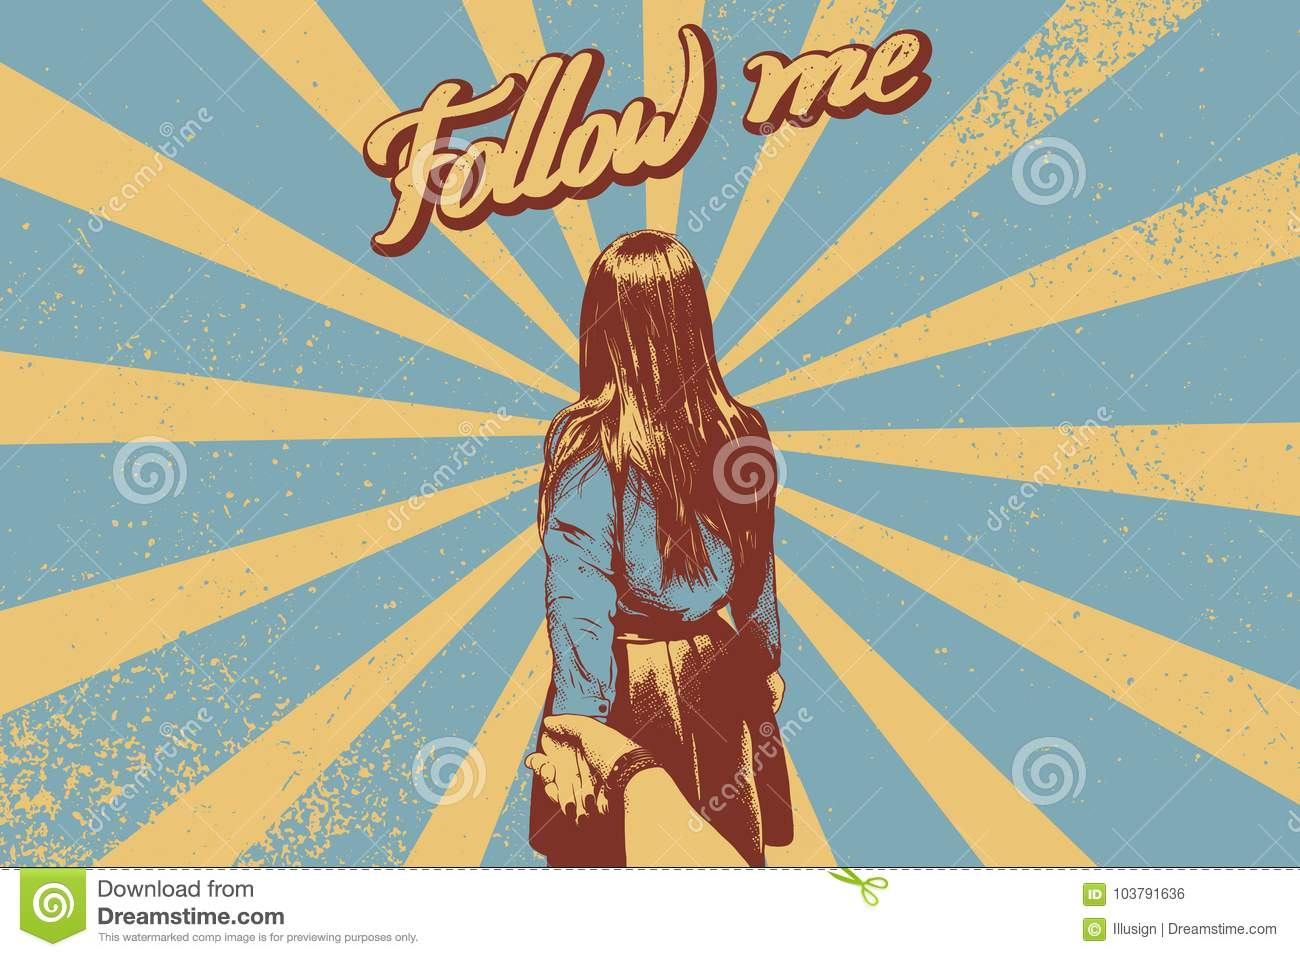 Follow me lettering. Woman leads man by the hand. Grunge retro vector illustration.